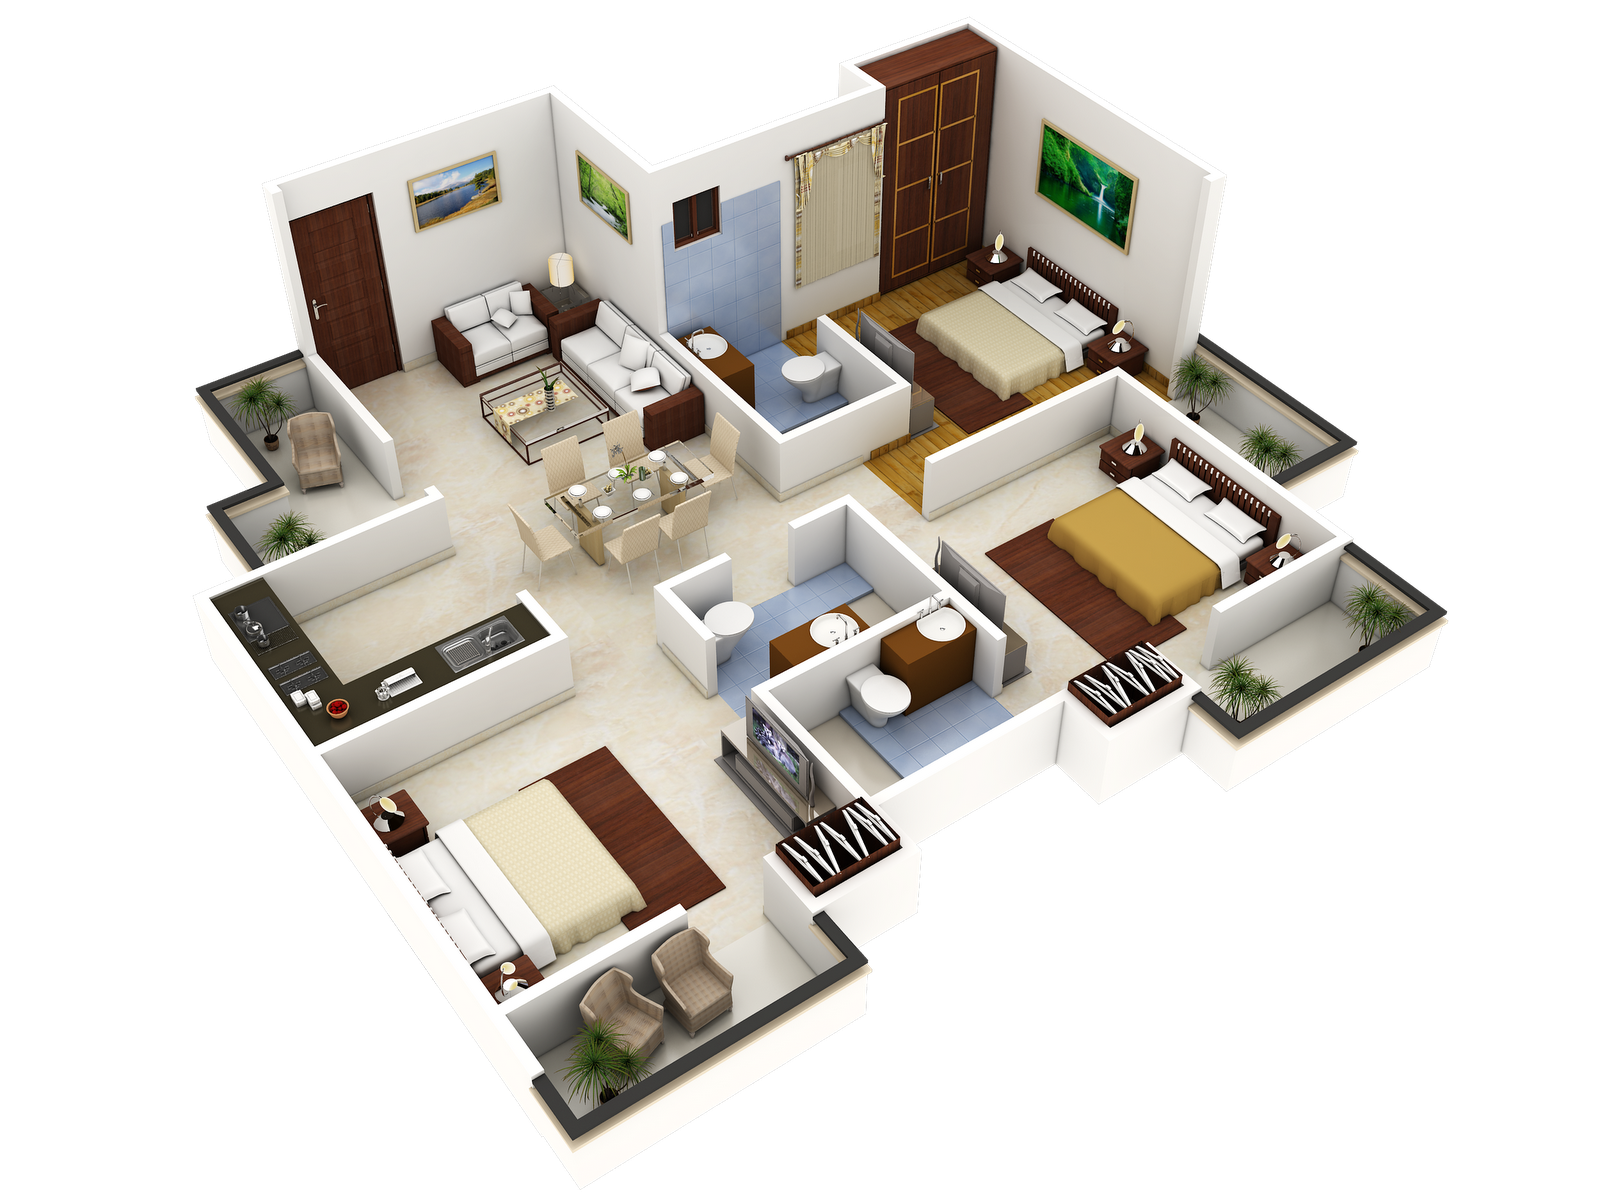 3 bedroom house designs 3d Buscar con Google Grandes mansiones